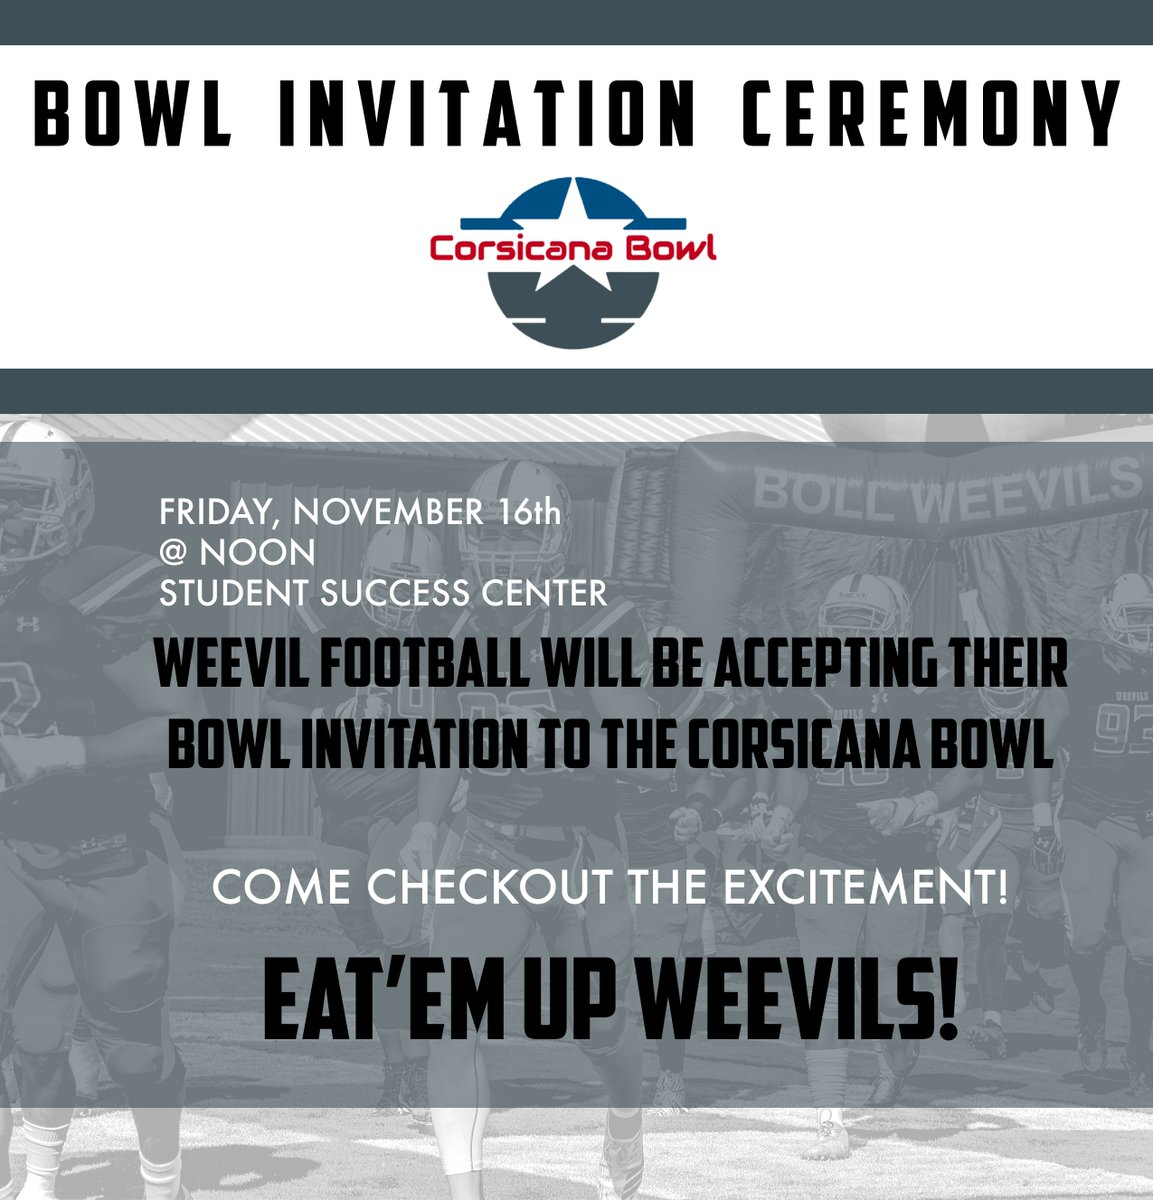 uam sports on twitter football bowl invitation ceremony will be